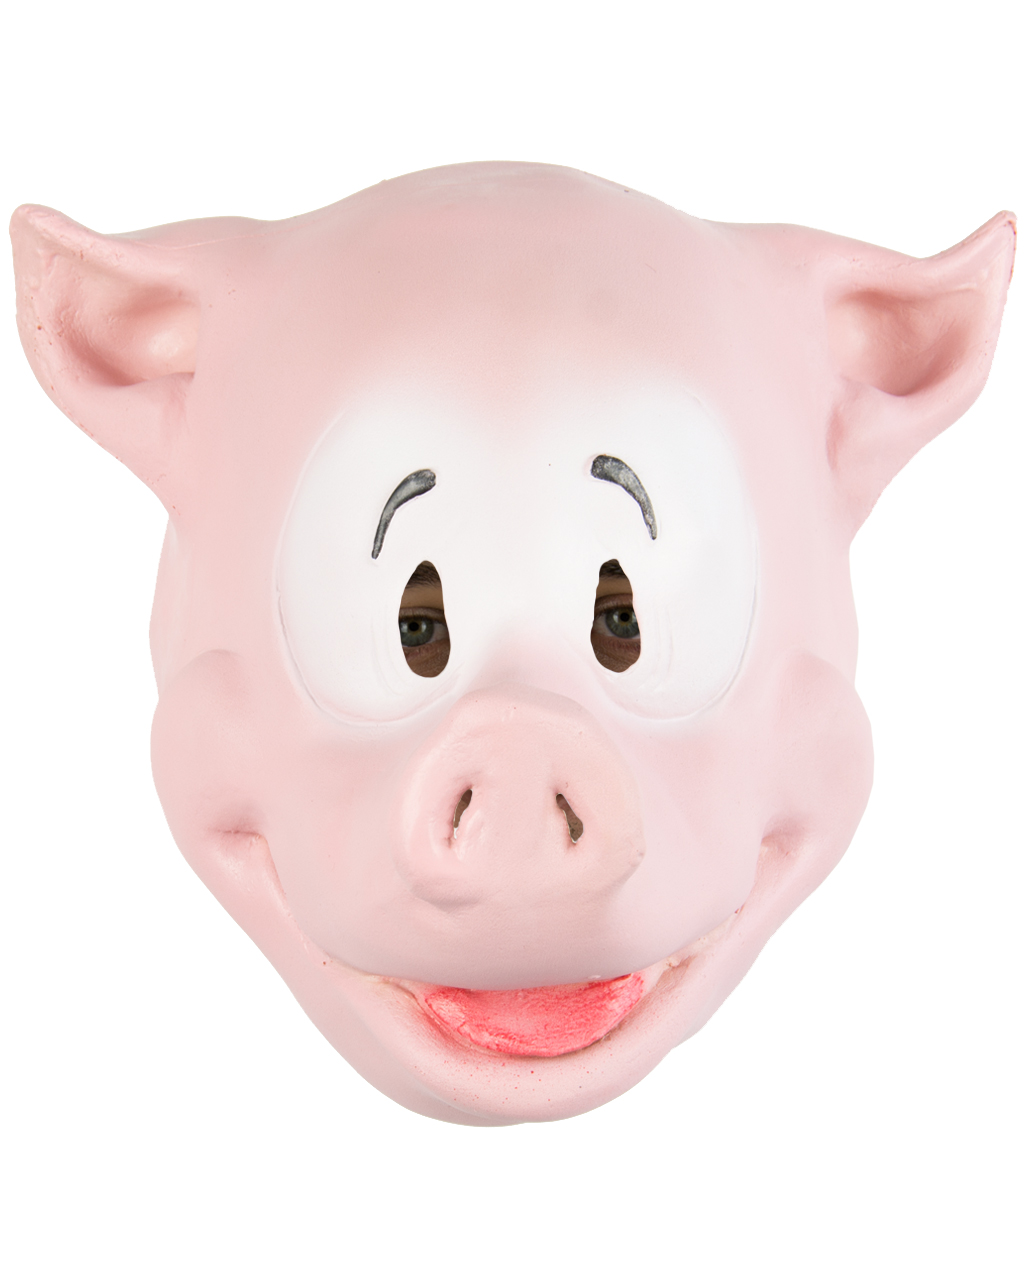 Comic Pig Mask Grey Country Animal Masks Animal Mask Pig Mask